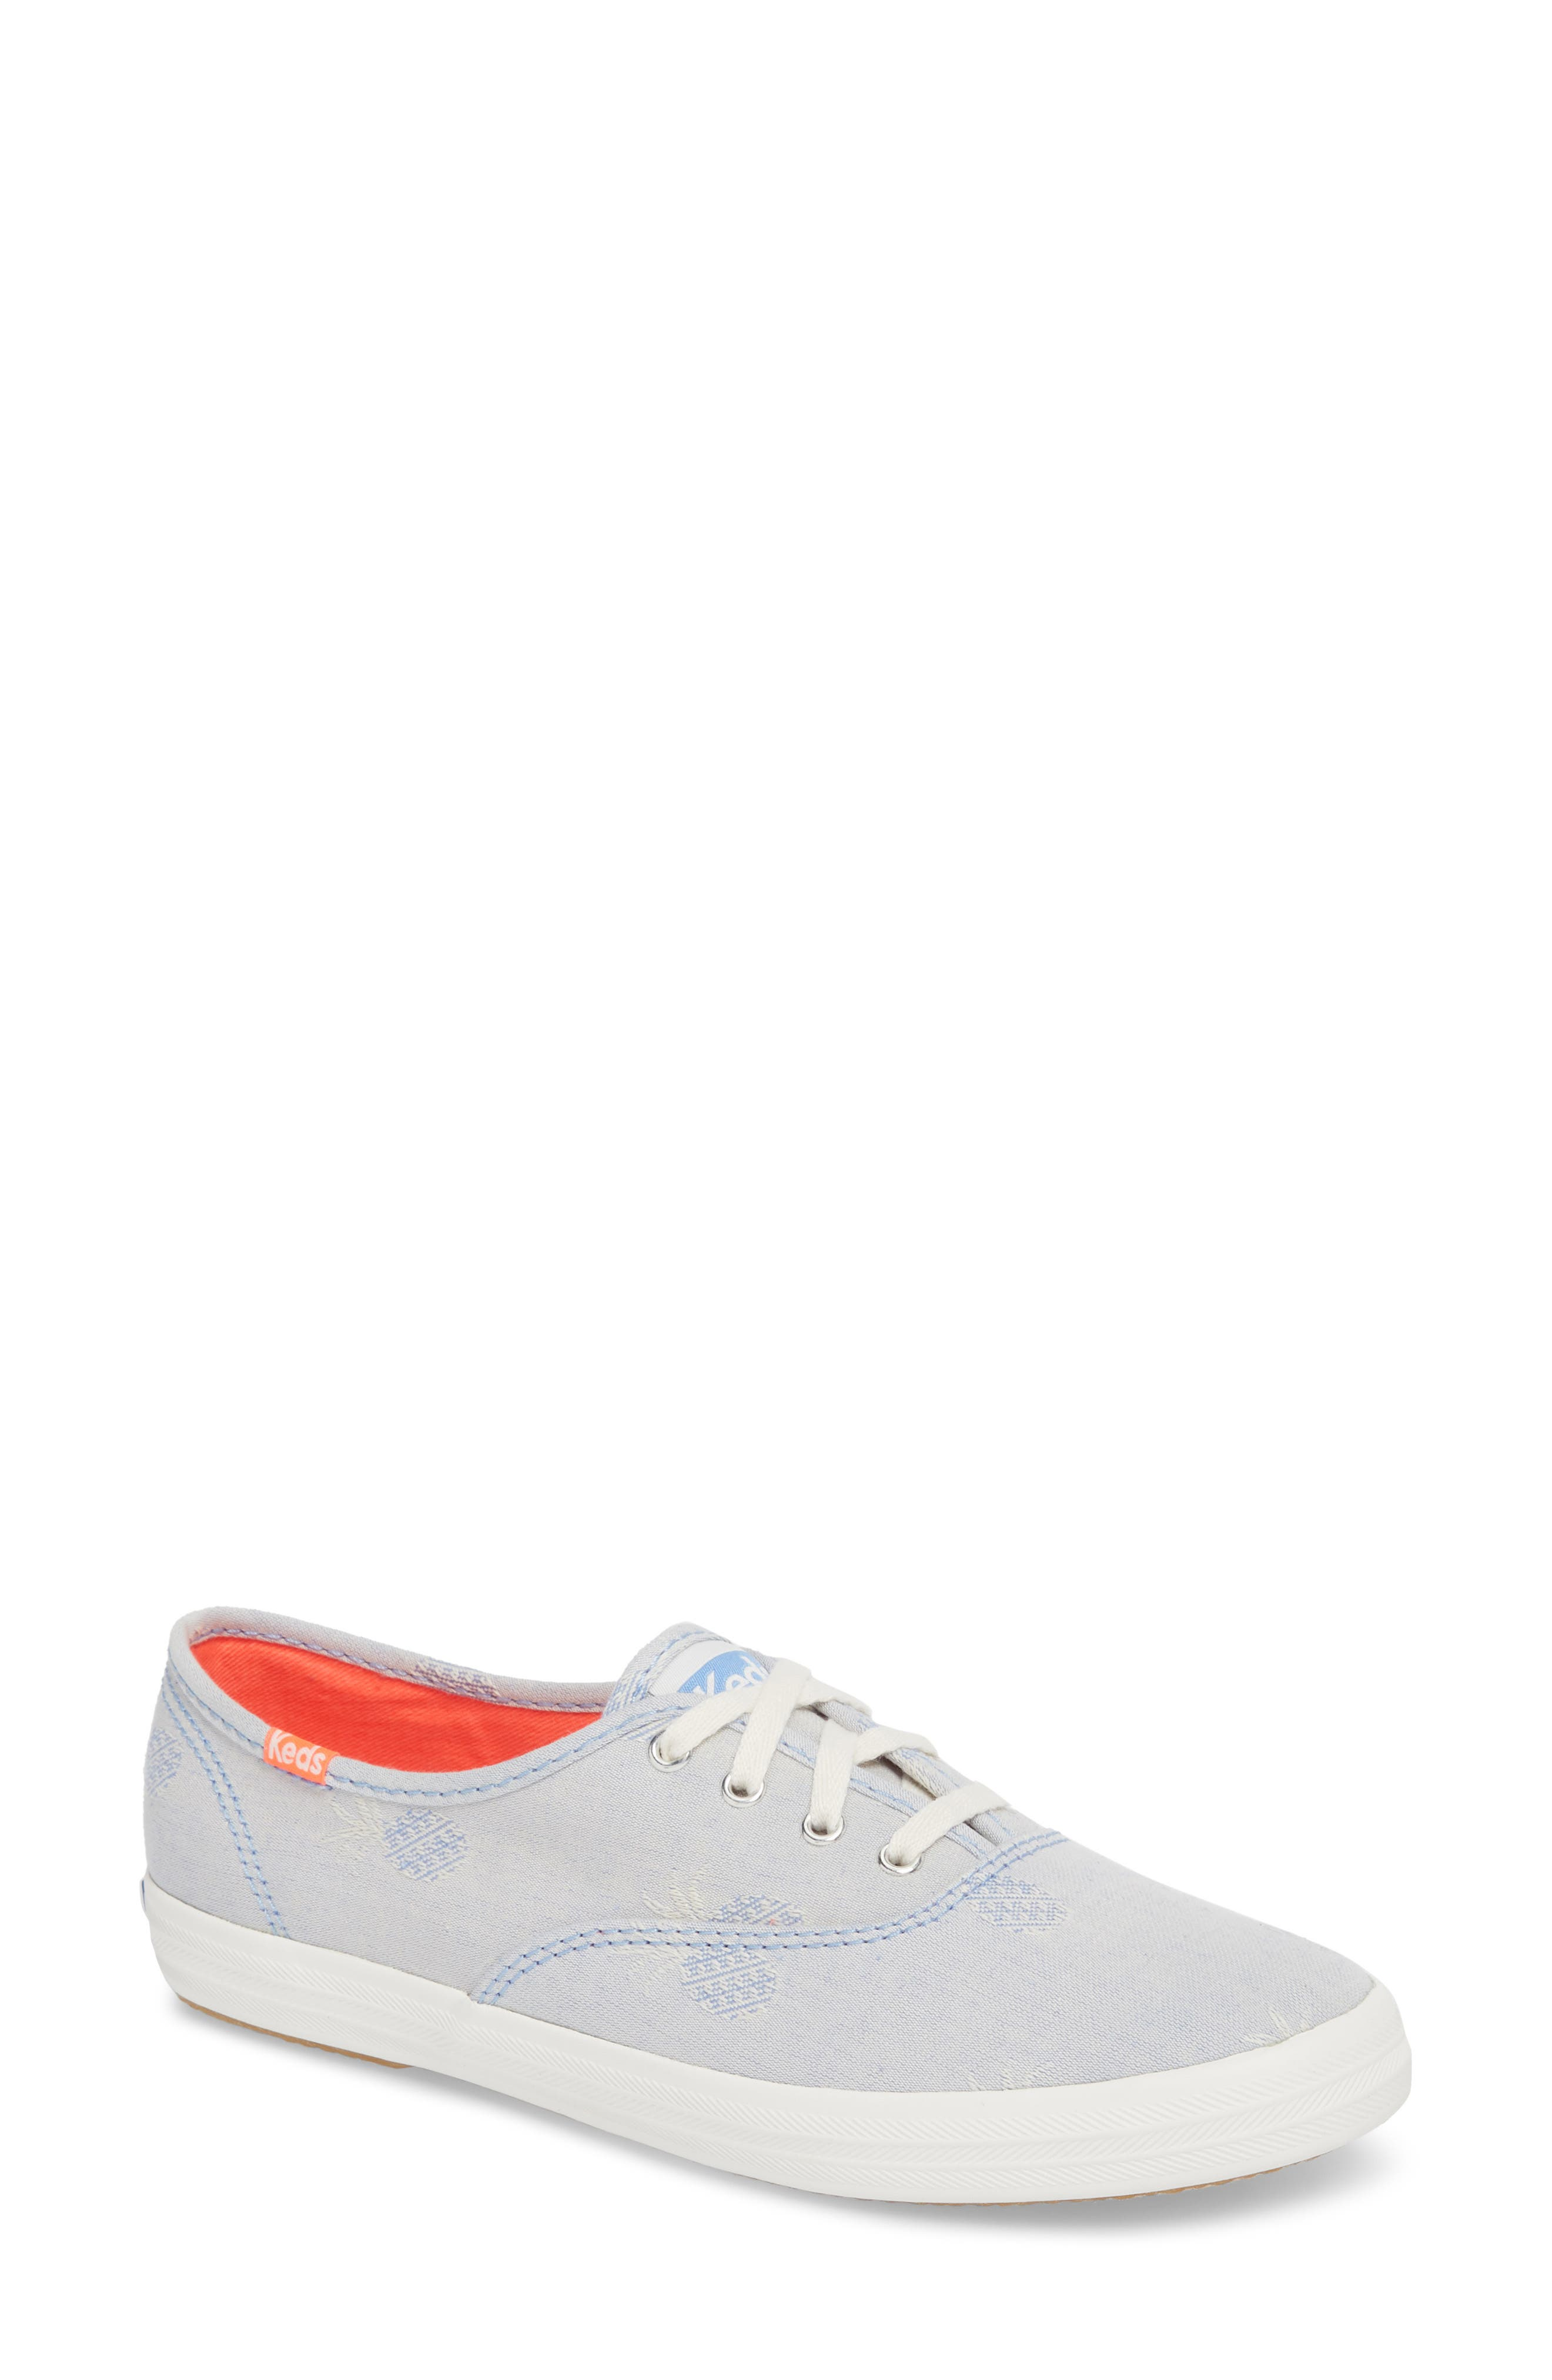 Champion Pineapple Chambray Sneaker,                         Main,                         color, 400